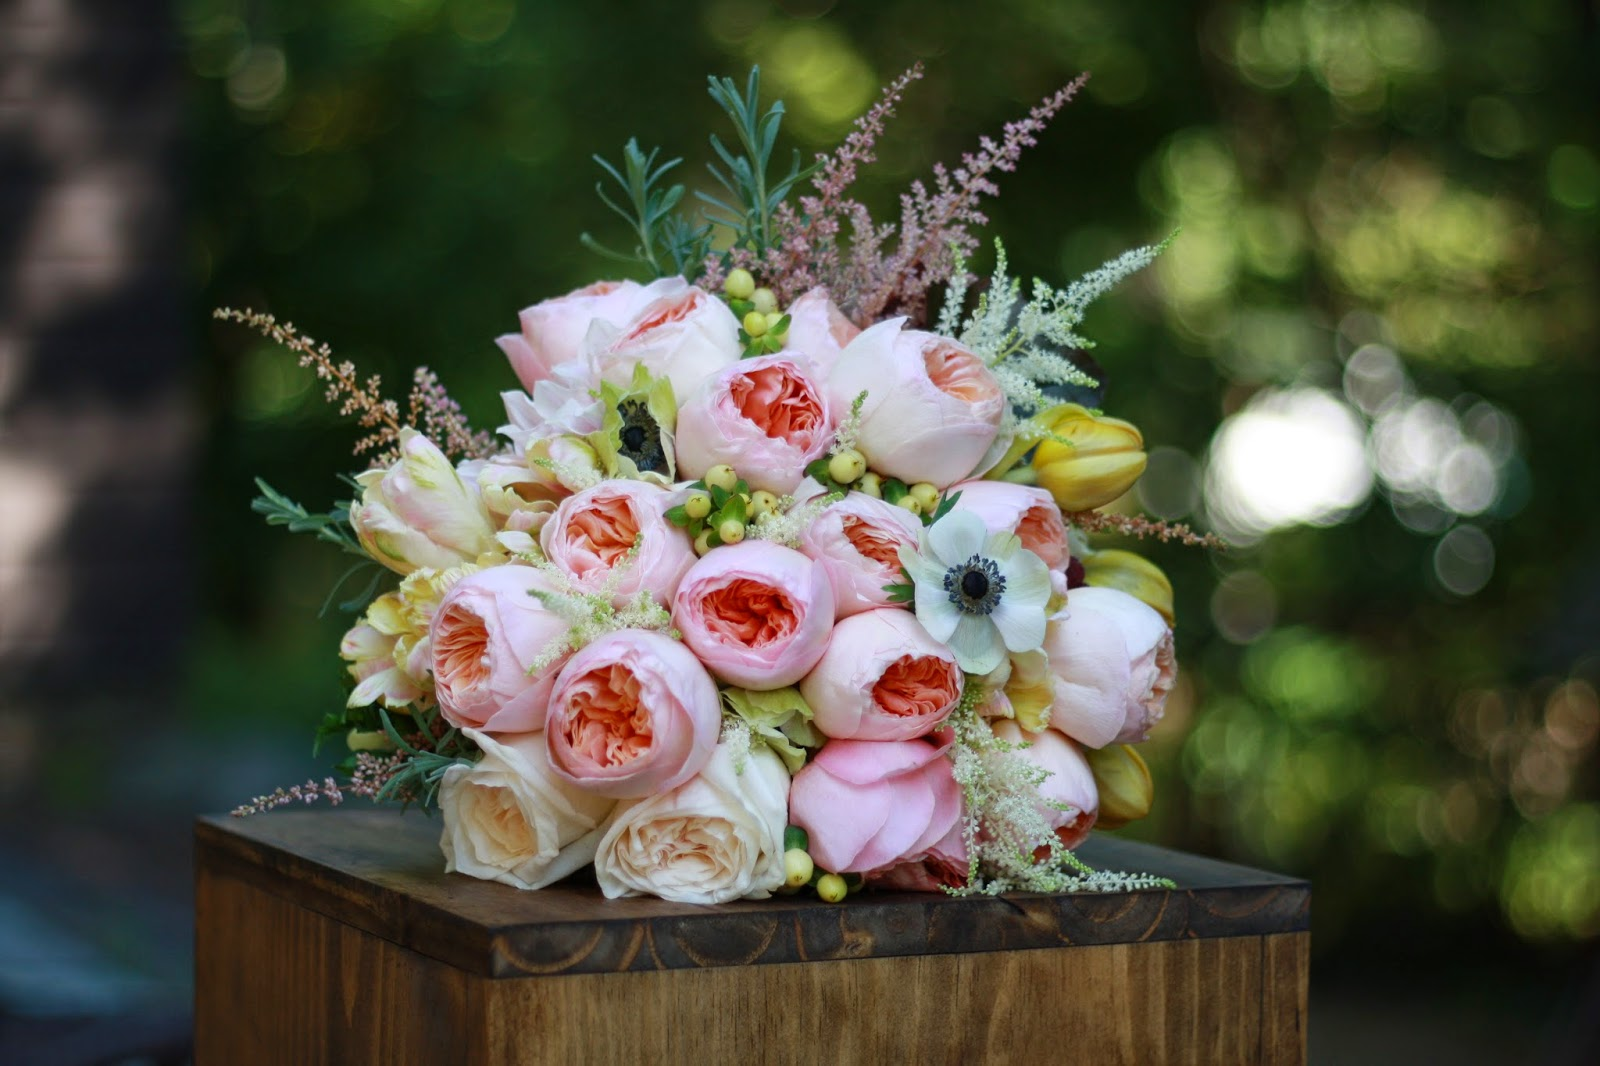 Bridal Bouquet - Elegant, lush and romantic hand-tied bouquet with movement composed of pale peach Juliet garden roses, blush garden roses, café au lait dahlias, anemones, pale pink astilbe, cream hypericum berry, white hydrangea